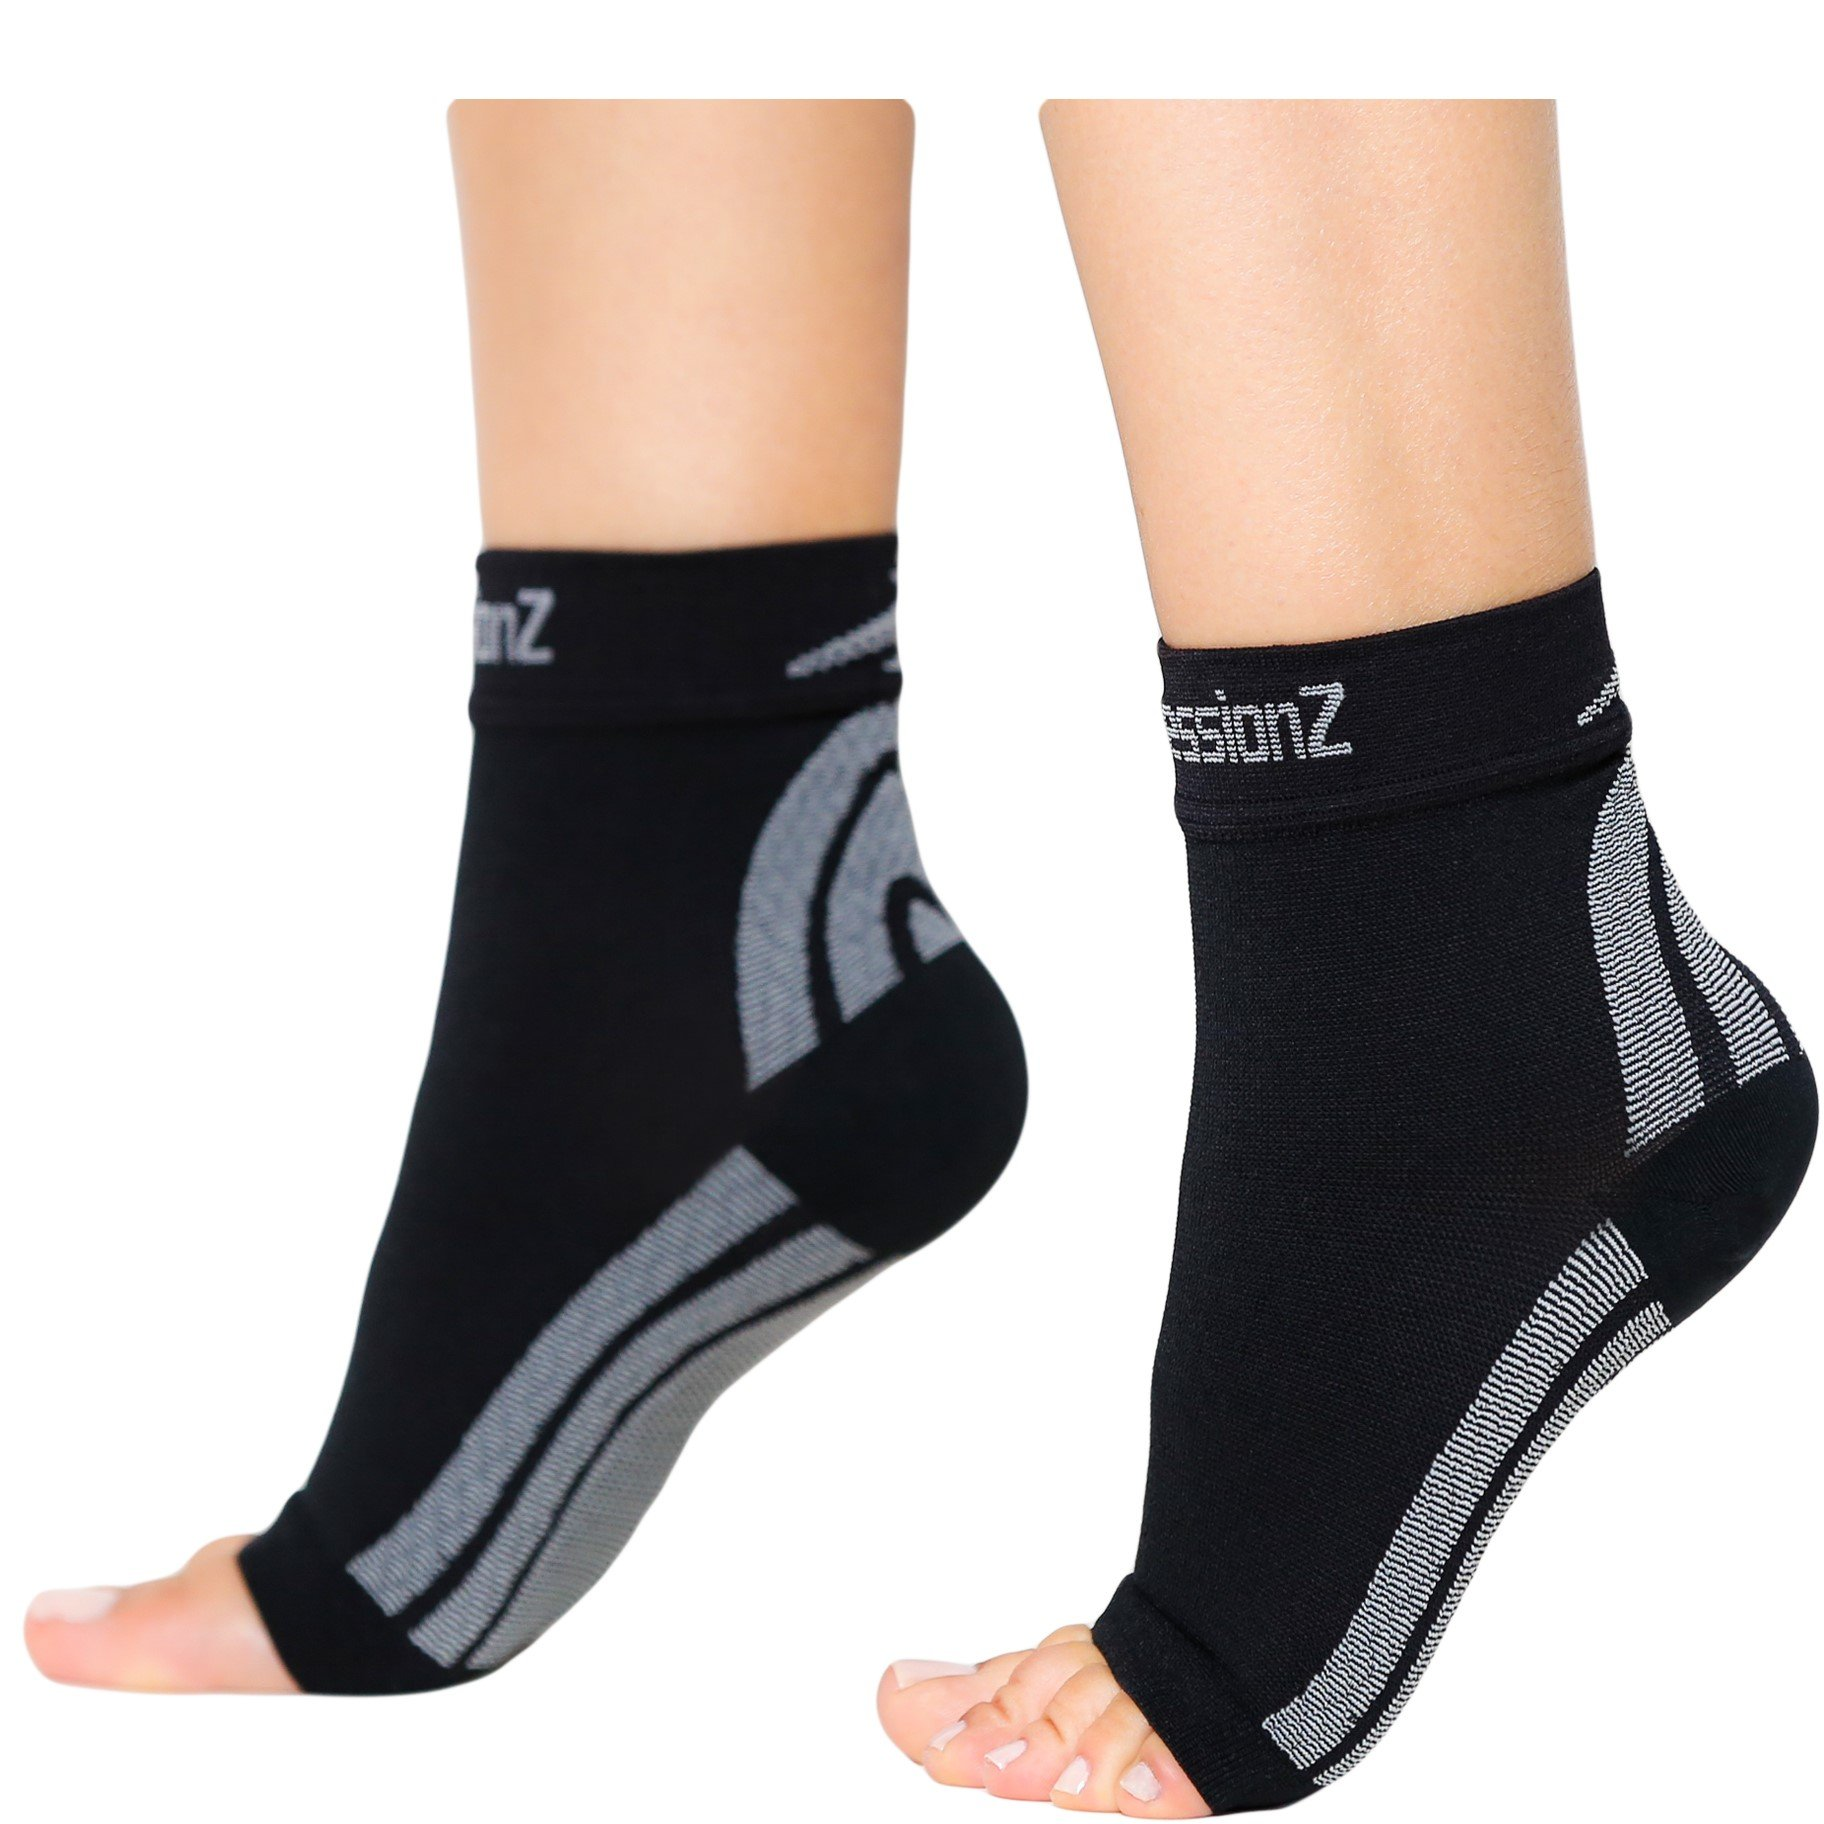 CompressionZ Plantar Fasciitis Socks - Compression Foot Sleeves - Ankle Brace with Arch Support - Pain Relief from Heel Spurs, Edema, Achilles Tendonitis - Reduce Swelling & Improve Circulation